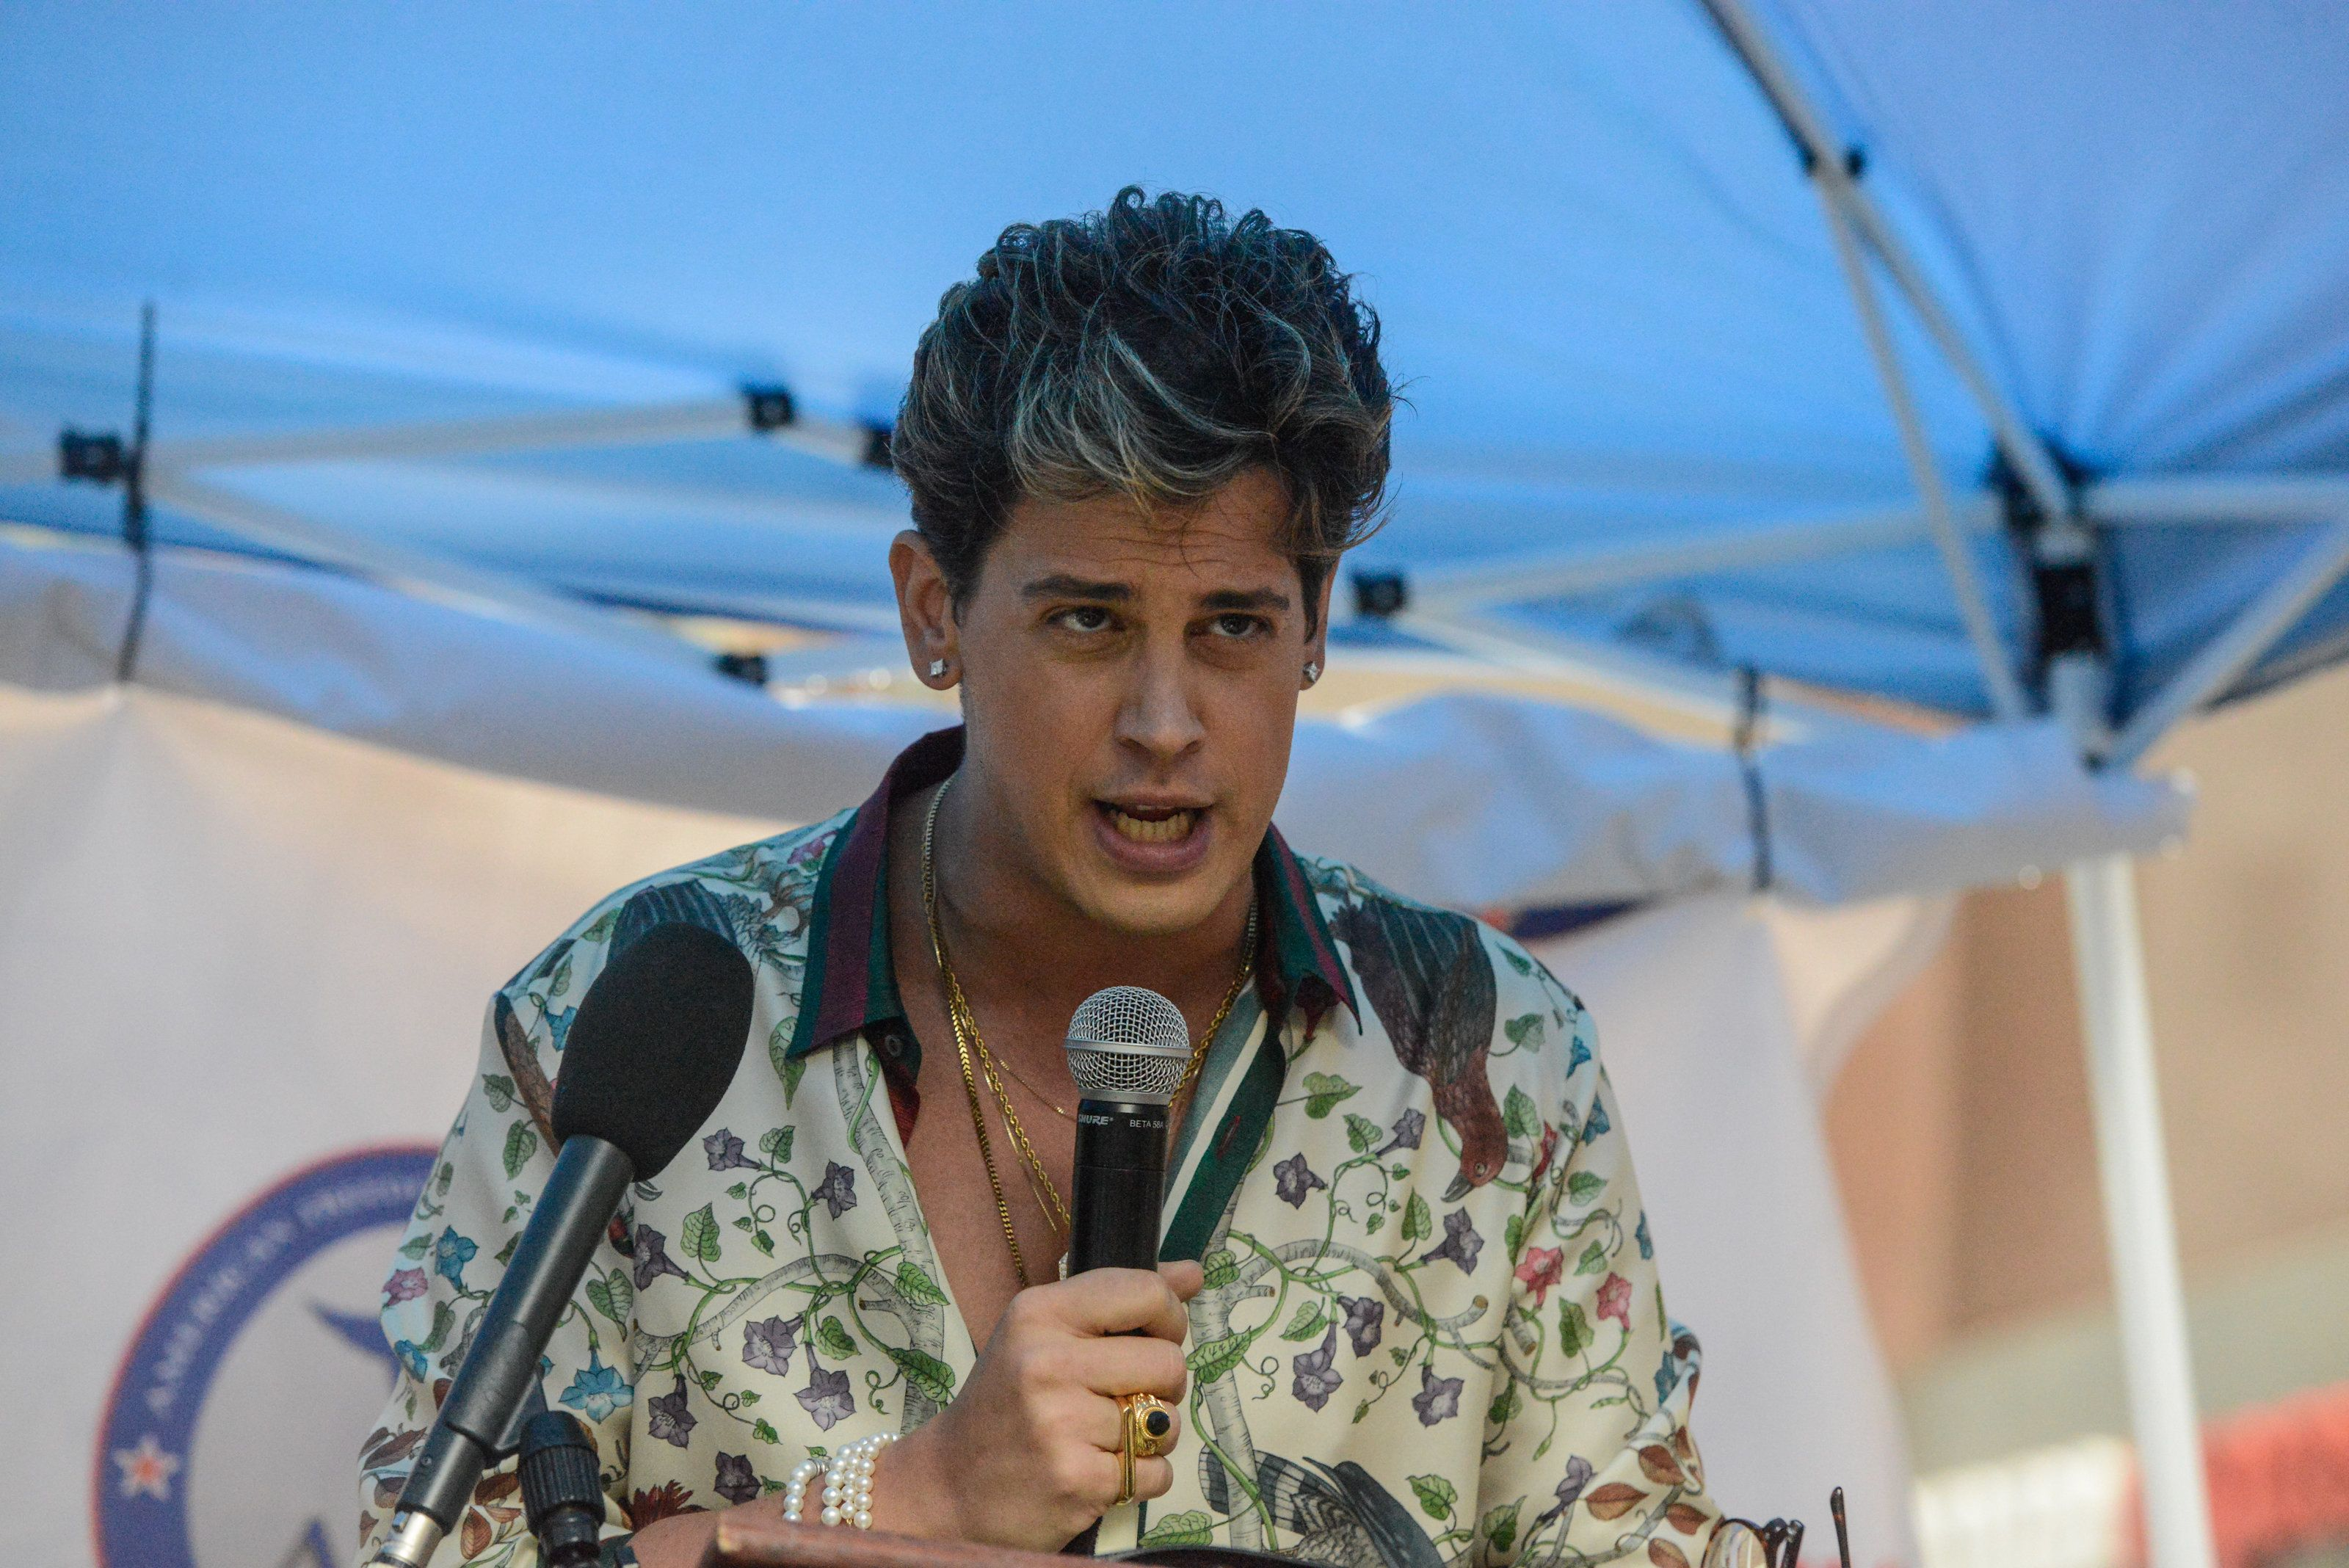 NEW YORK, NY - APRIL 25: Milo Yiannopoulos speaks at an Alt Right protest of Muslim activist Linda Sarsour on April 25, 2017 in New York City. (Photo by Stephanie Keith/Getty Images)